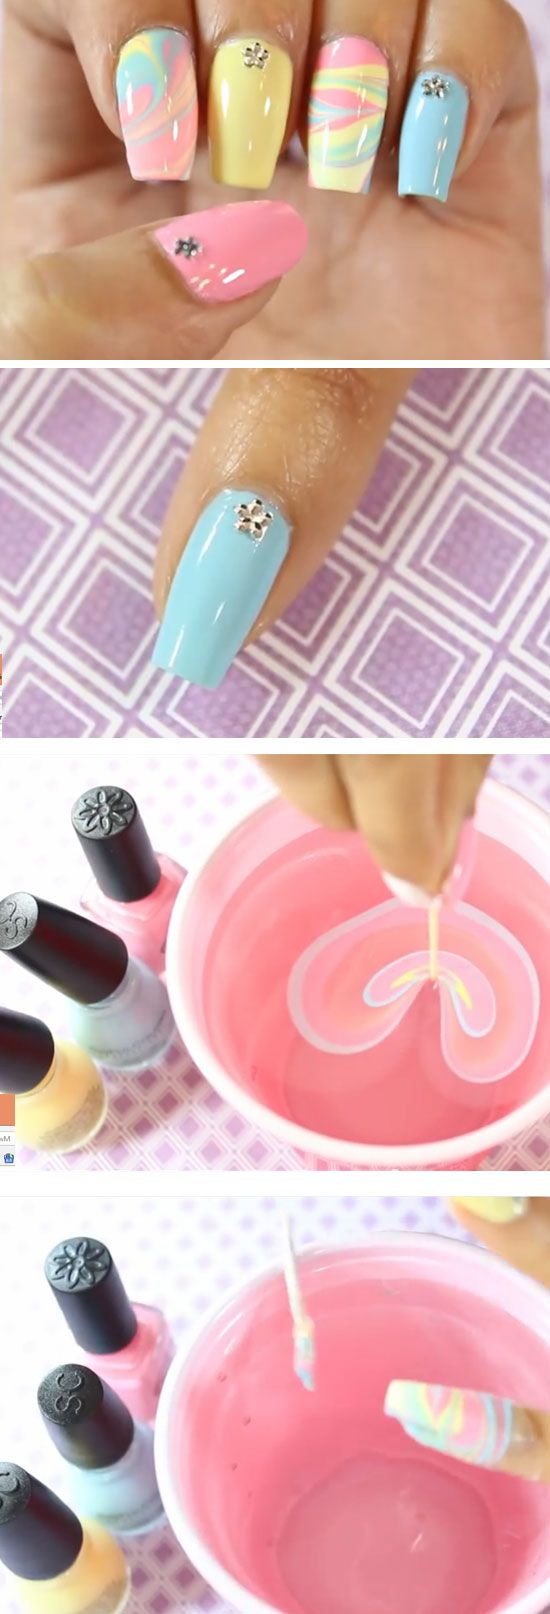 21 easy easter nail designs for short nails easter nail designs water marble nails and marble nails - Easy Nail Designs For Short Nails At Home